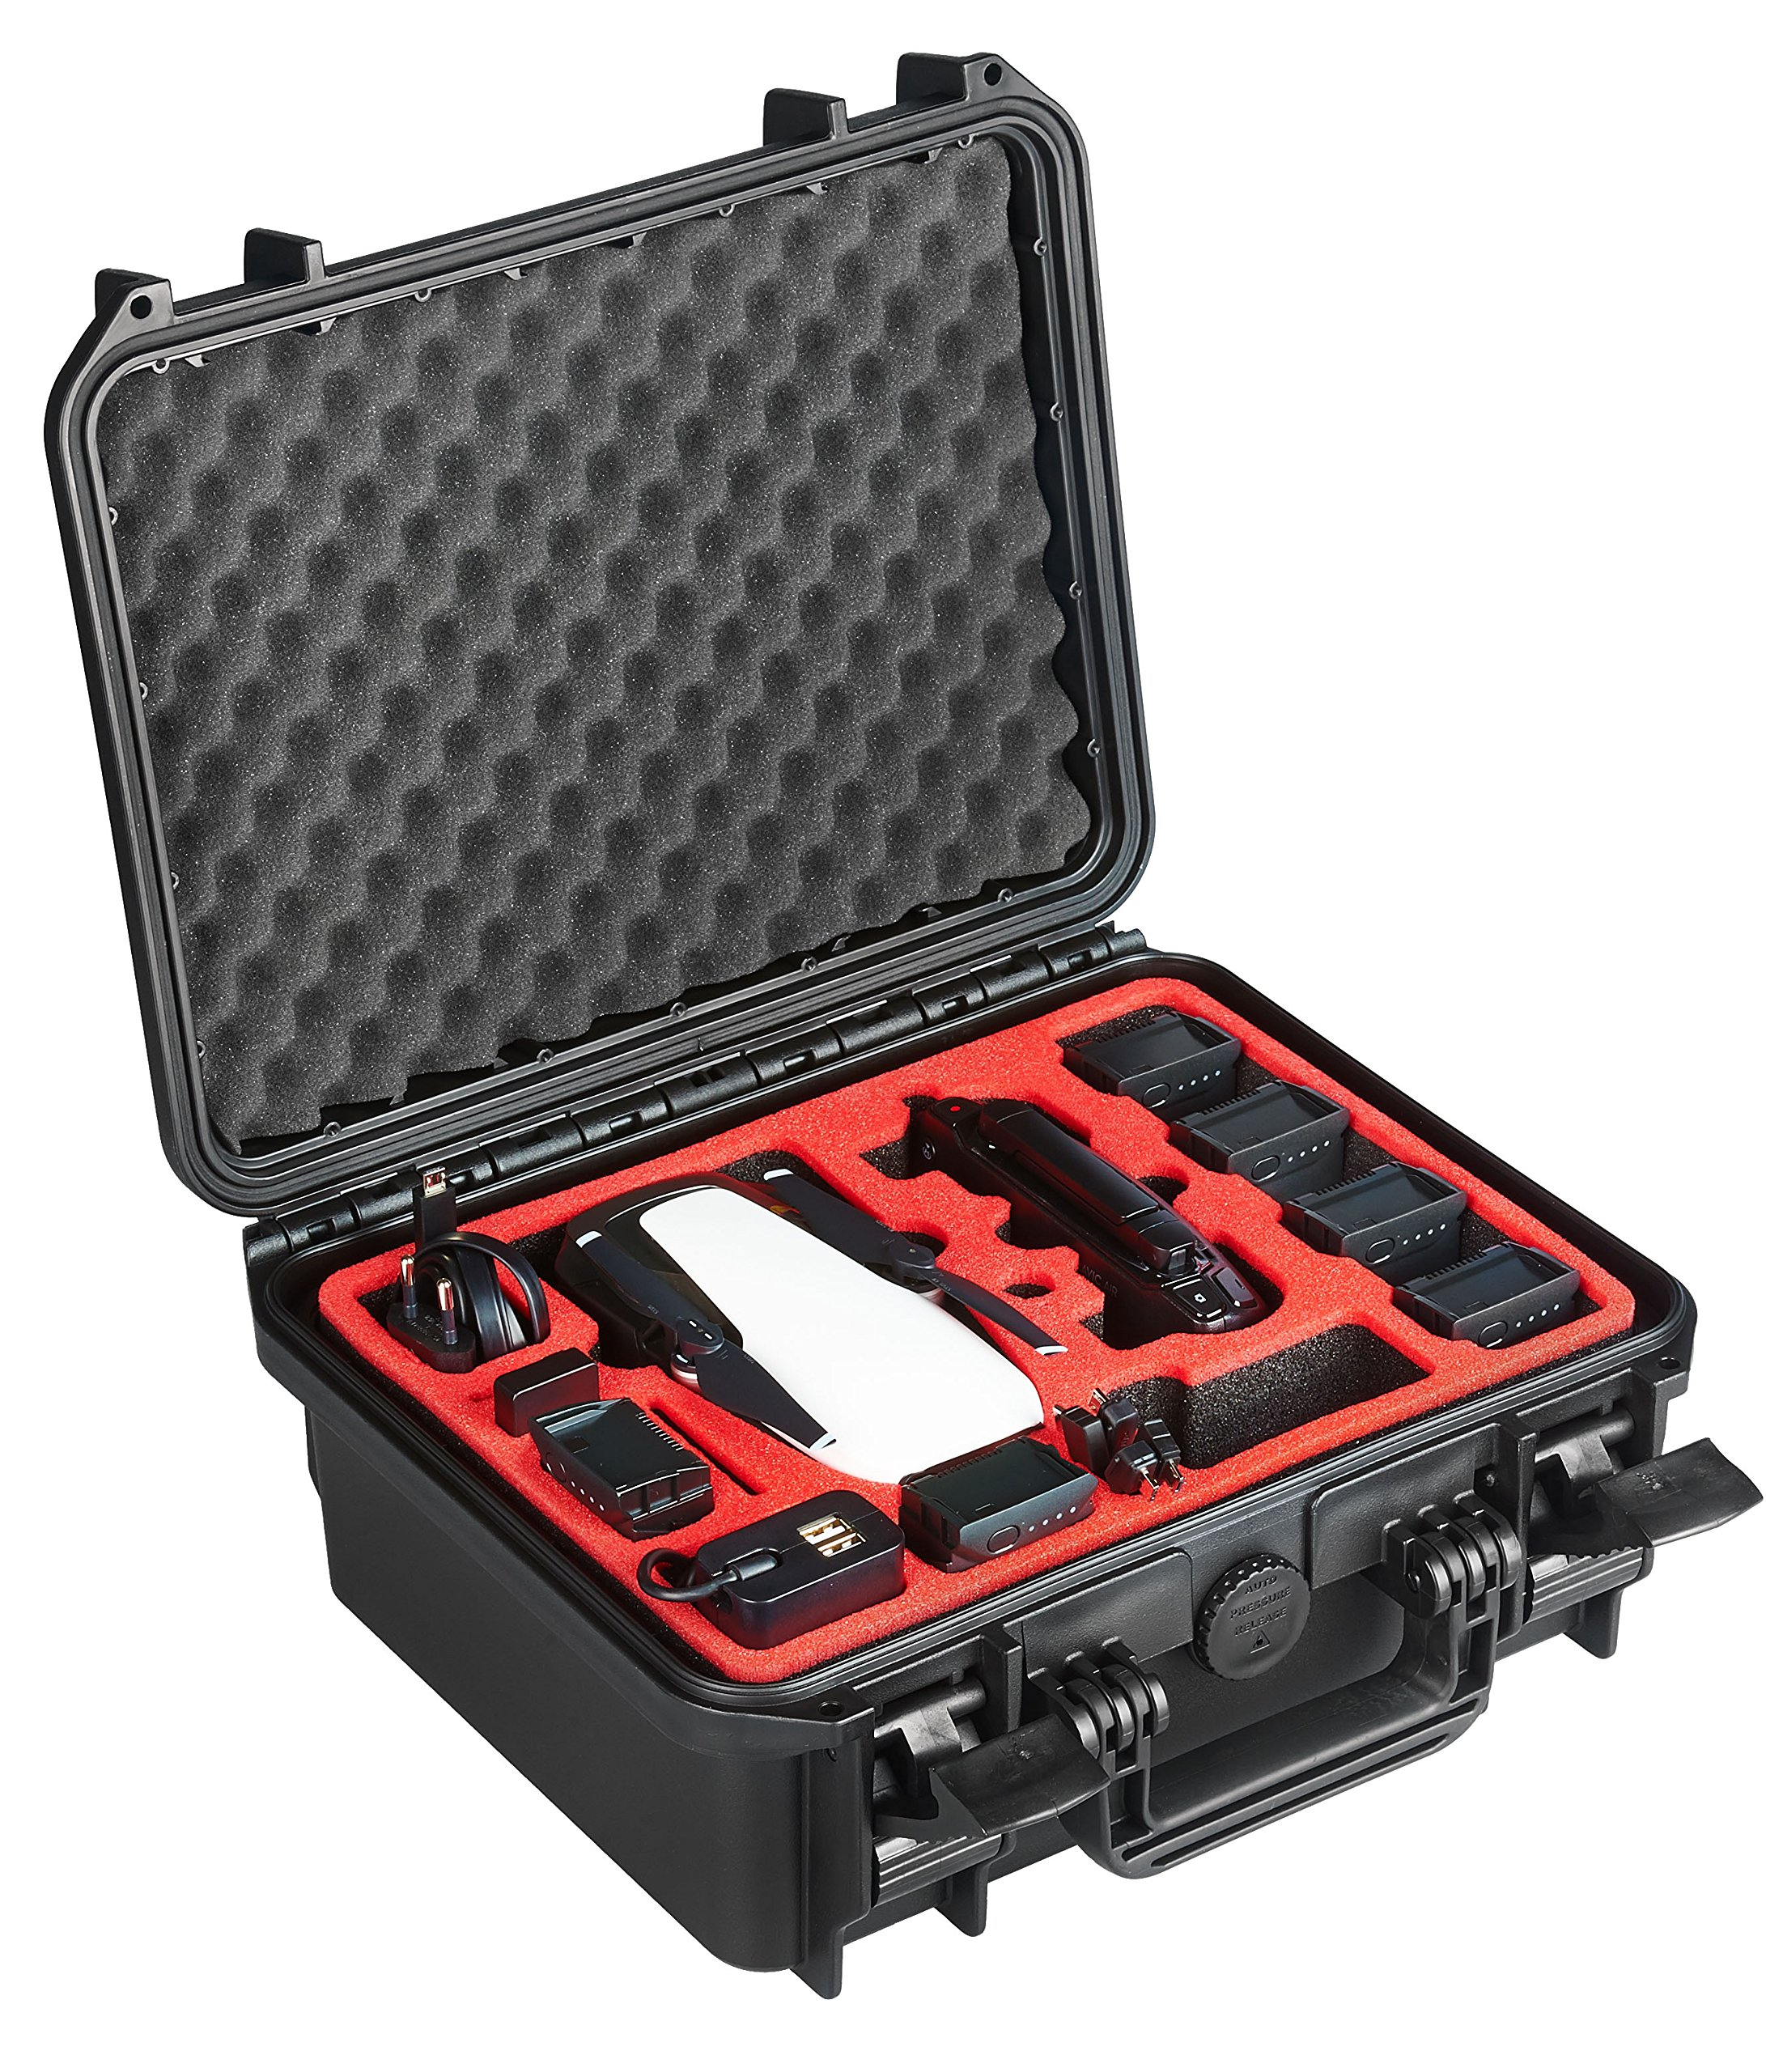 Professional Carry Case for DJI Mavic AIR - Made in Germany - by MC-CASES (Explorer Edition for DJI Mavic Air) by mc-cases (Image #2)